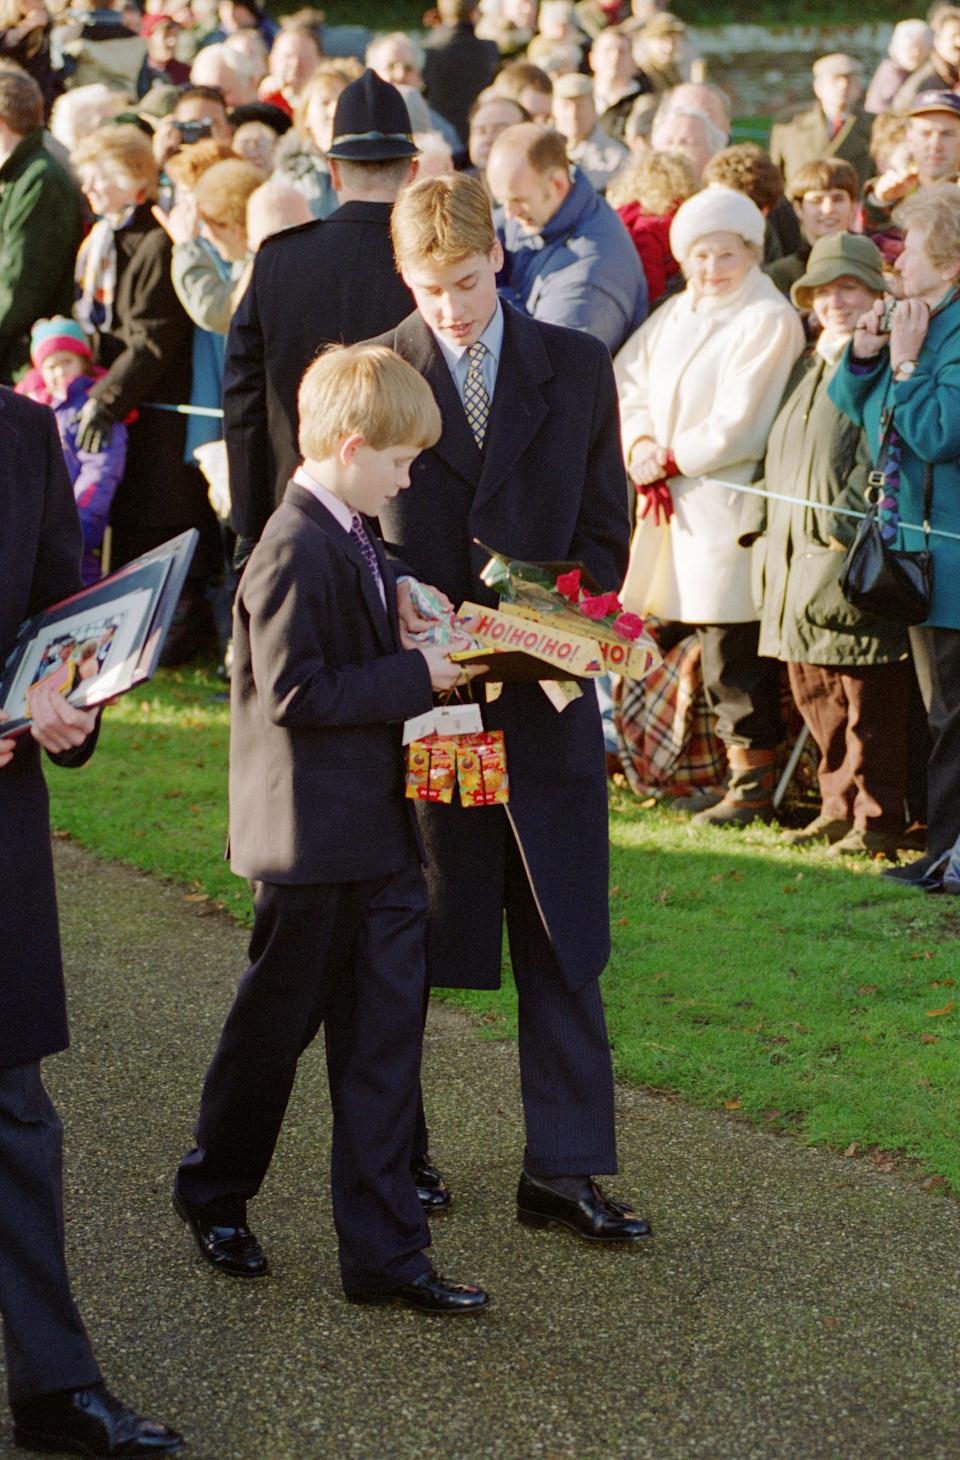 A young Prince Harry and Prince William inspect presents they received from the crowd in 1996. Photo: Getty Images